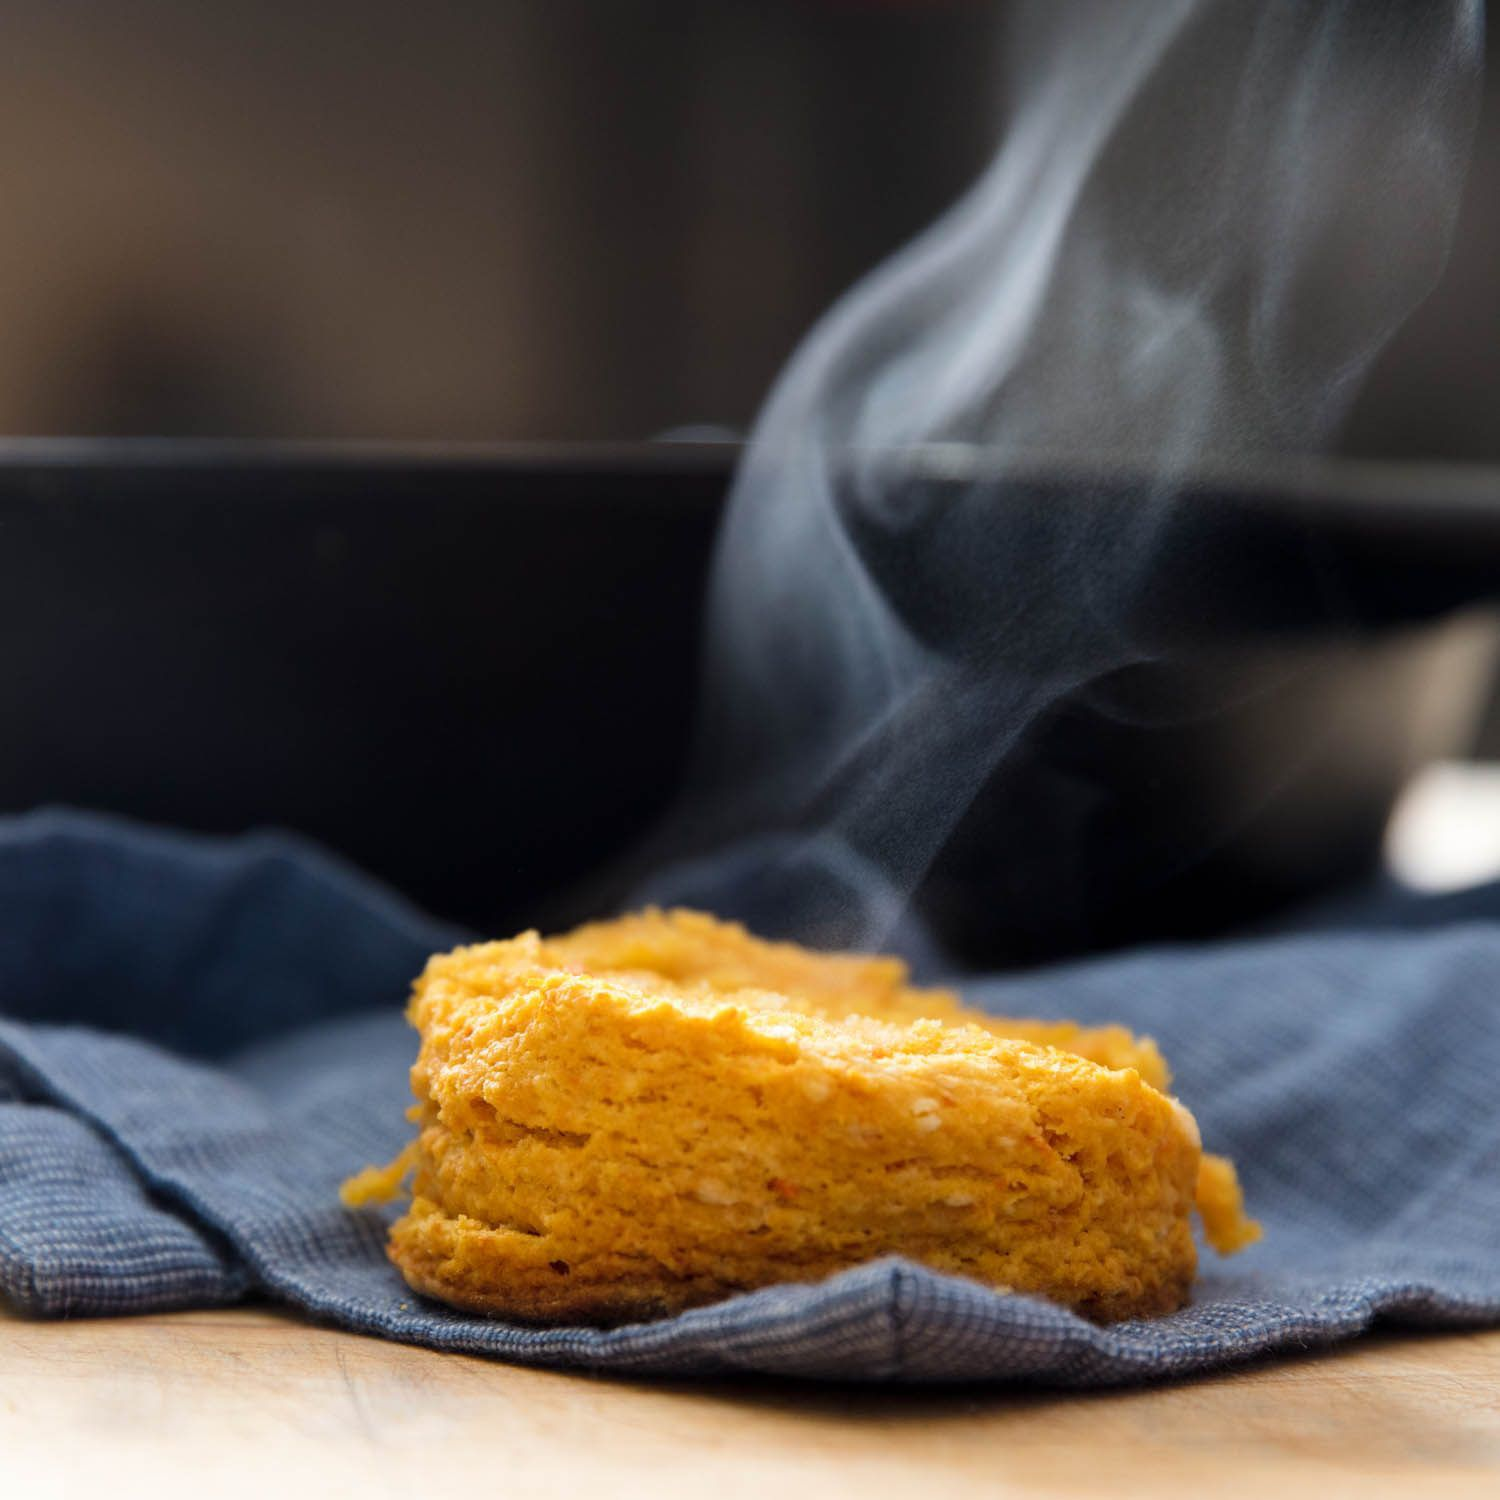 steaming hot sweet potato biscuit